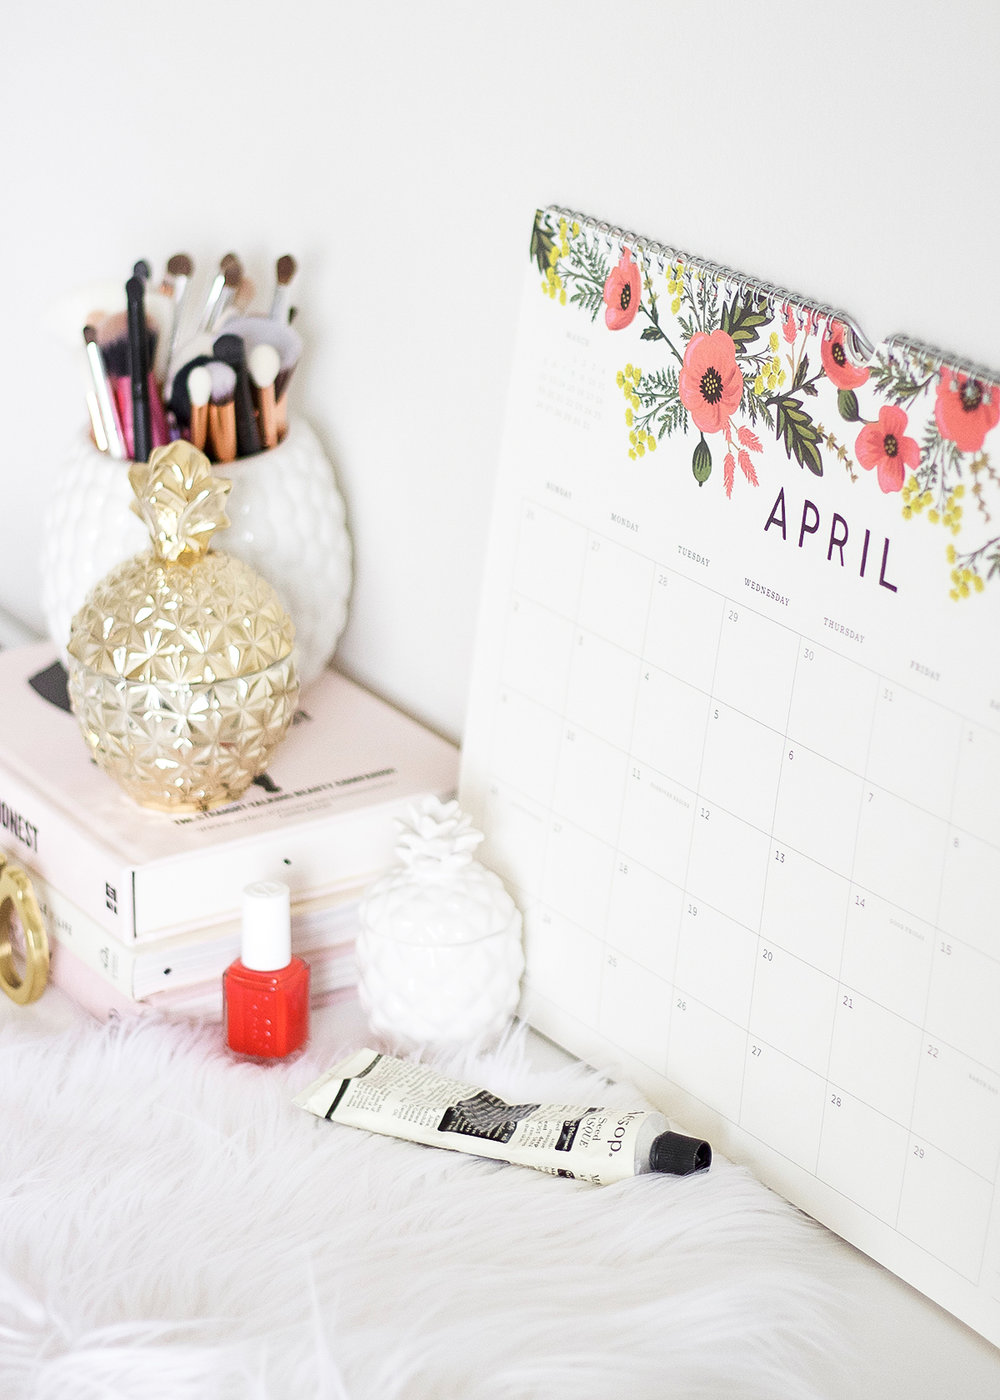 April Goals | A Girl, obsessed